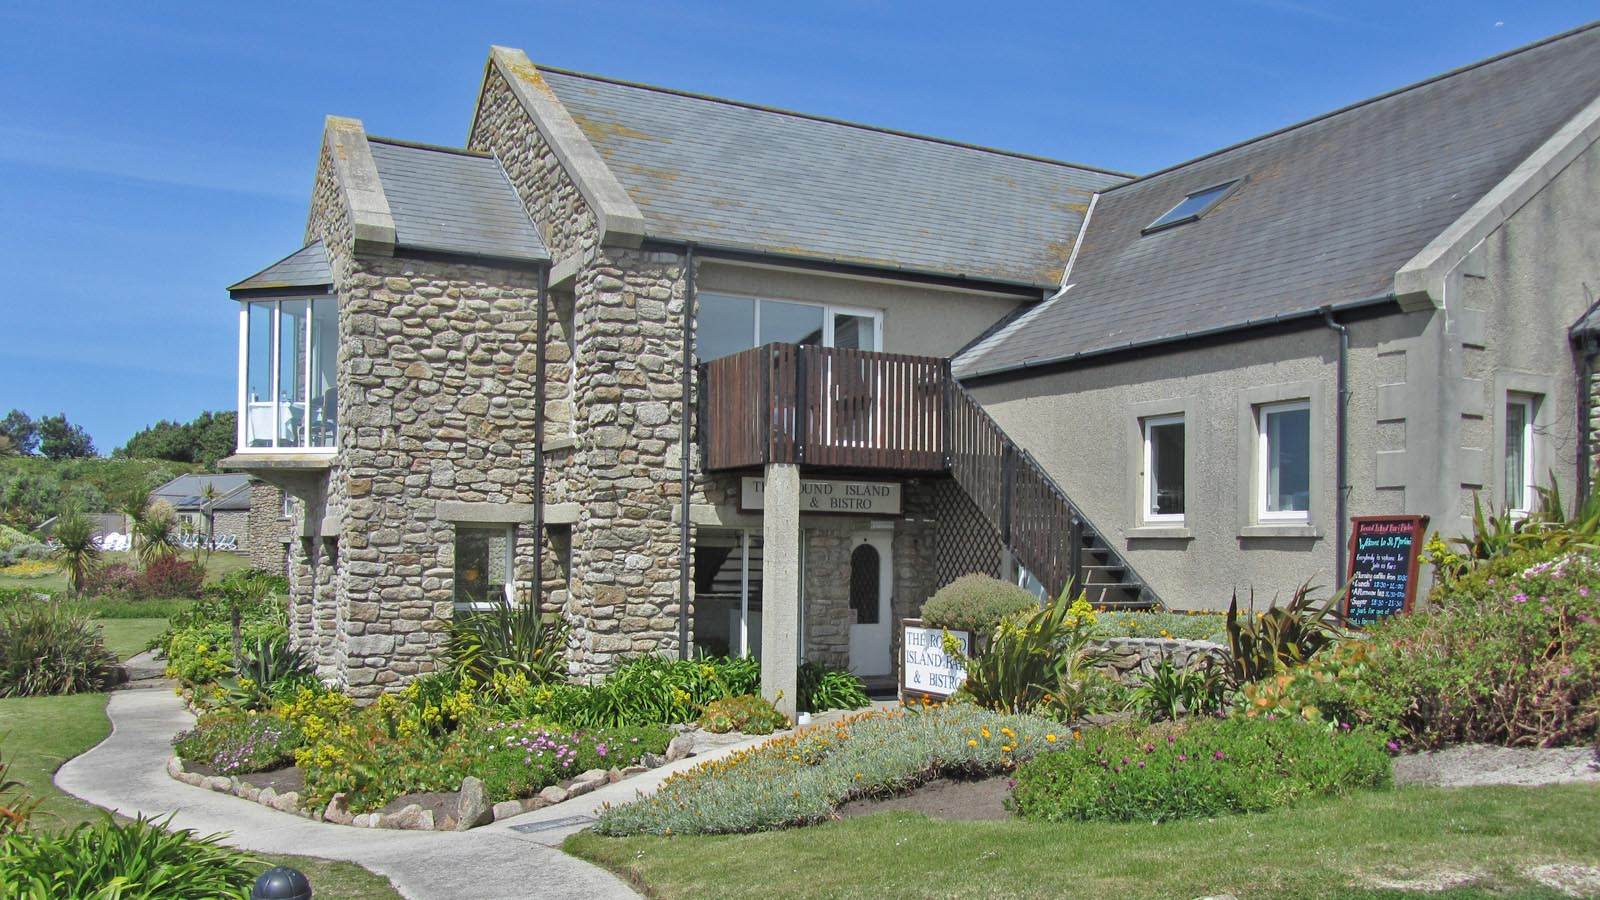 Chilled Out Luxury Coming To St Martin S As Hotel Set Reopen In August Scilly Today